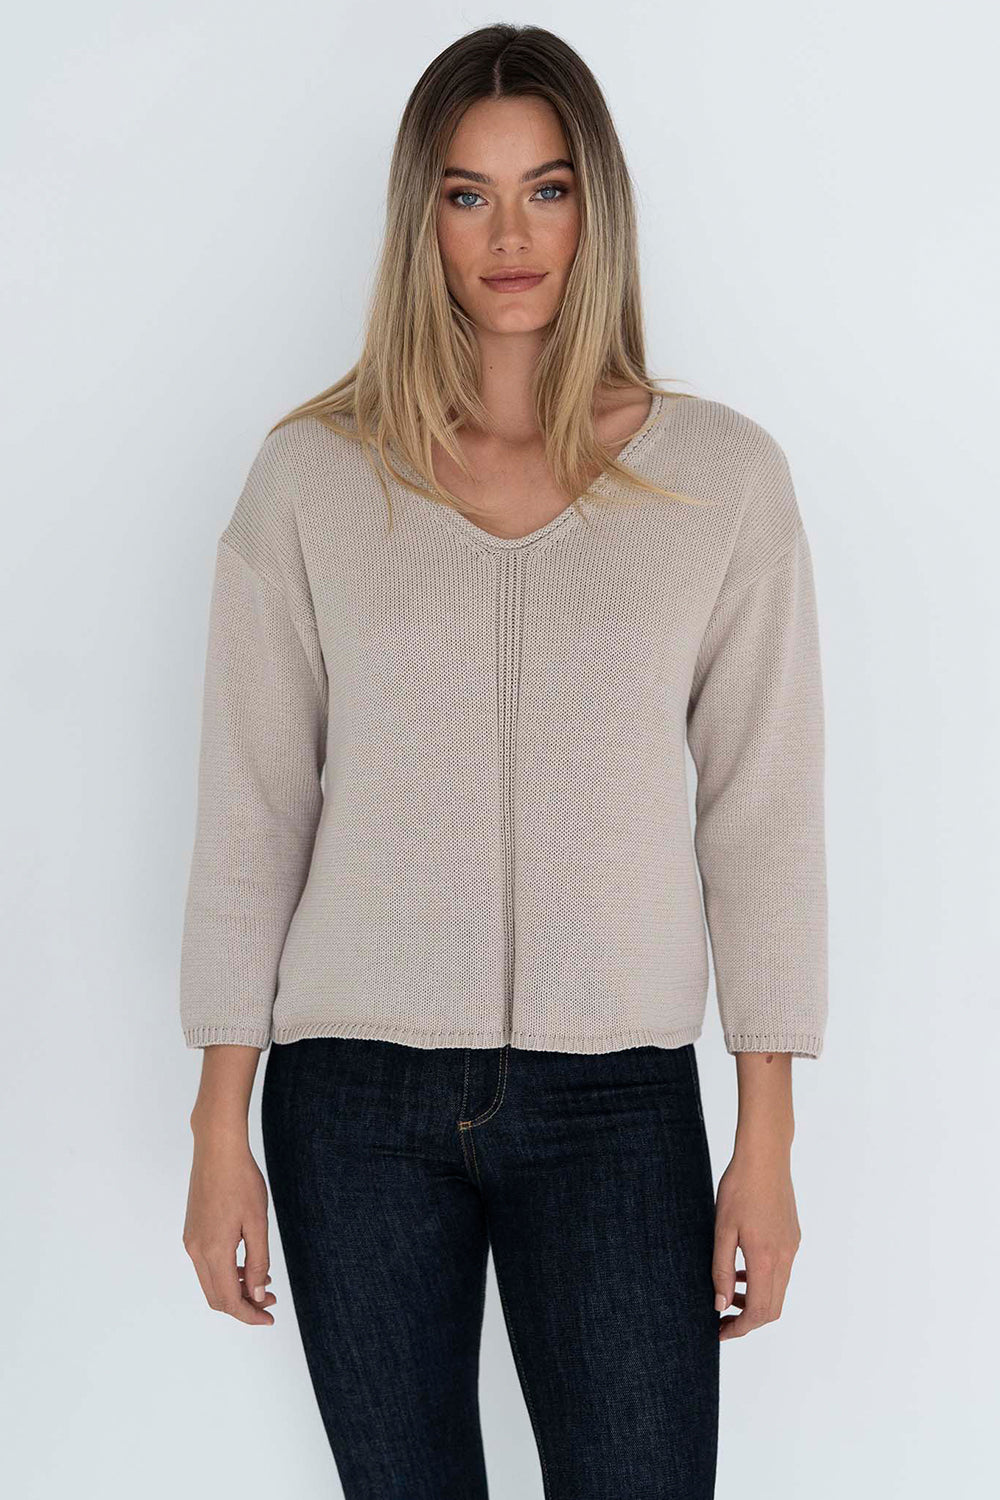 Humidity / Tillie Knit Top / Stone